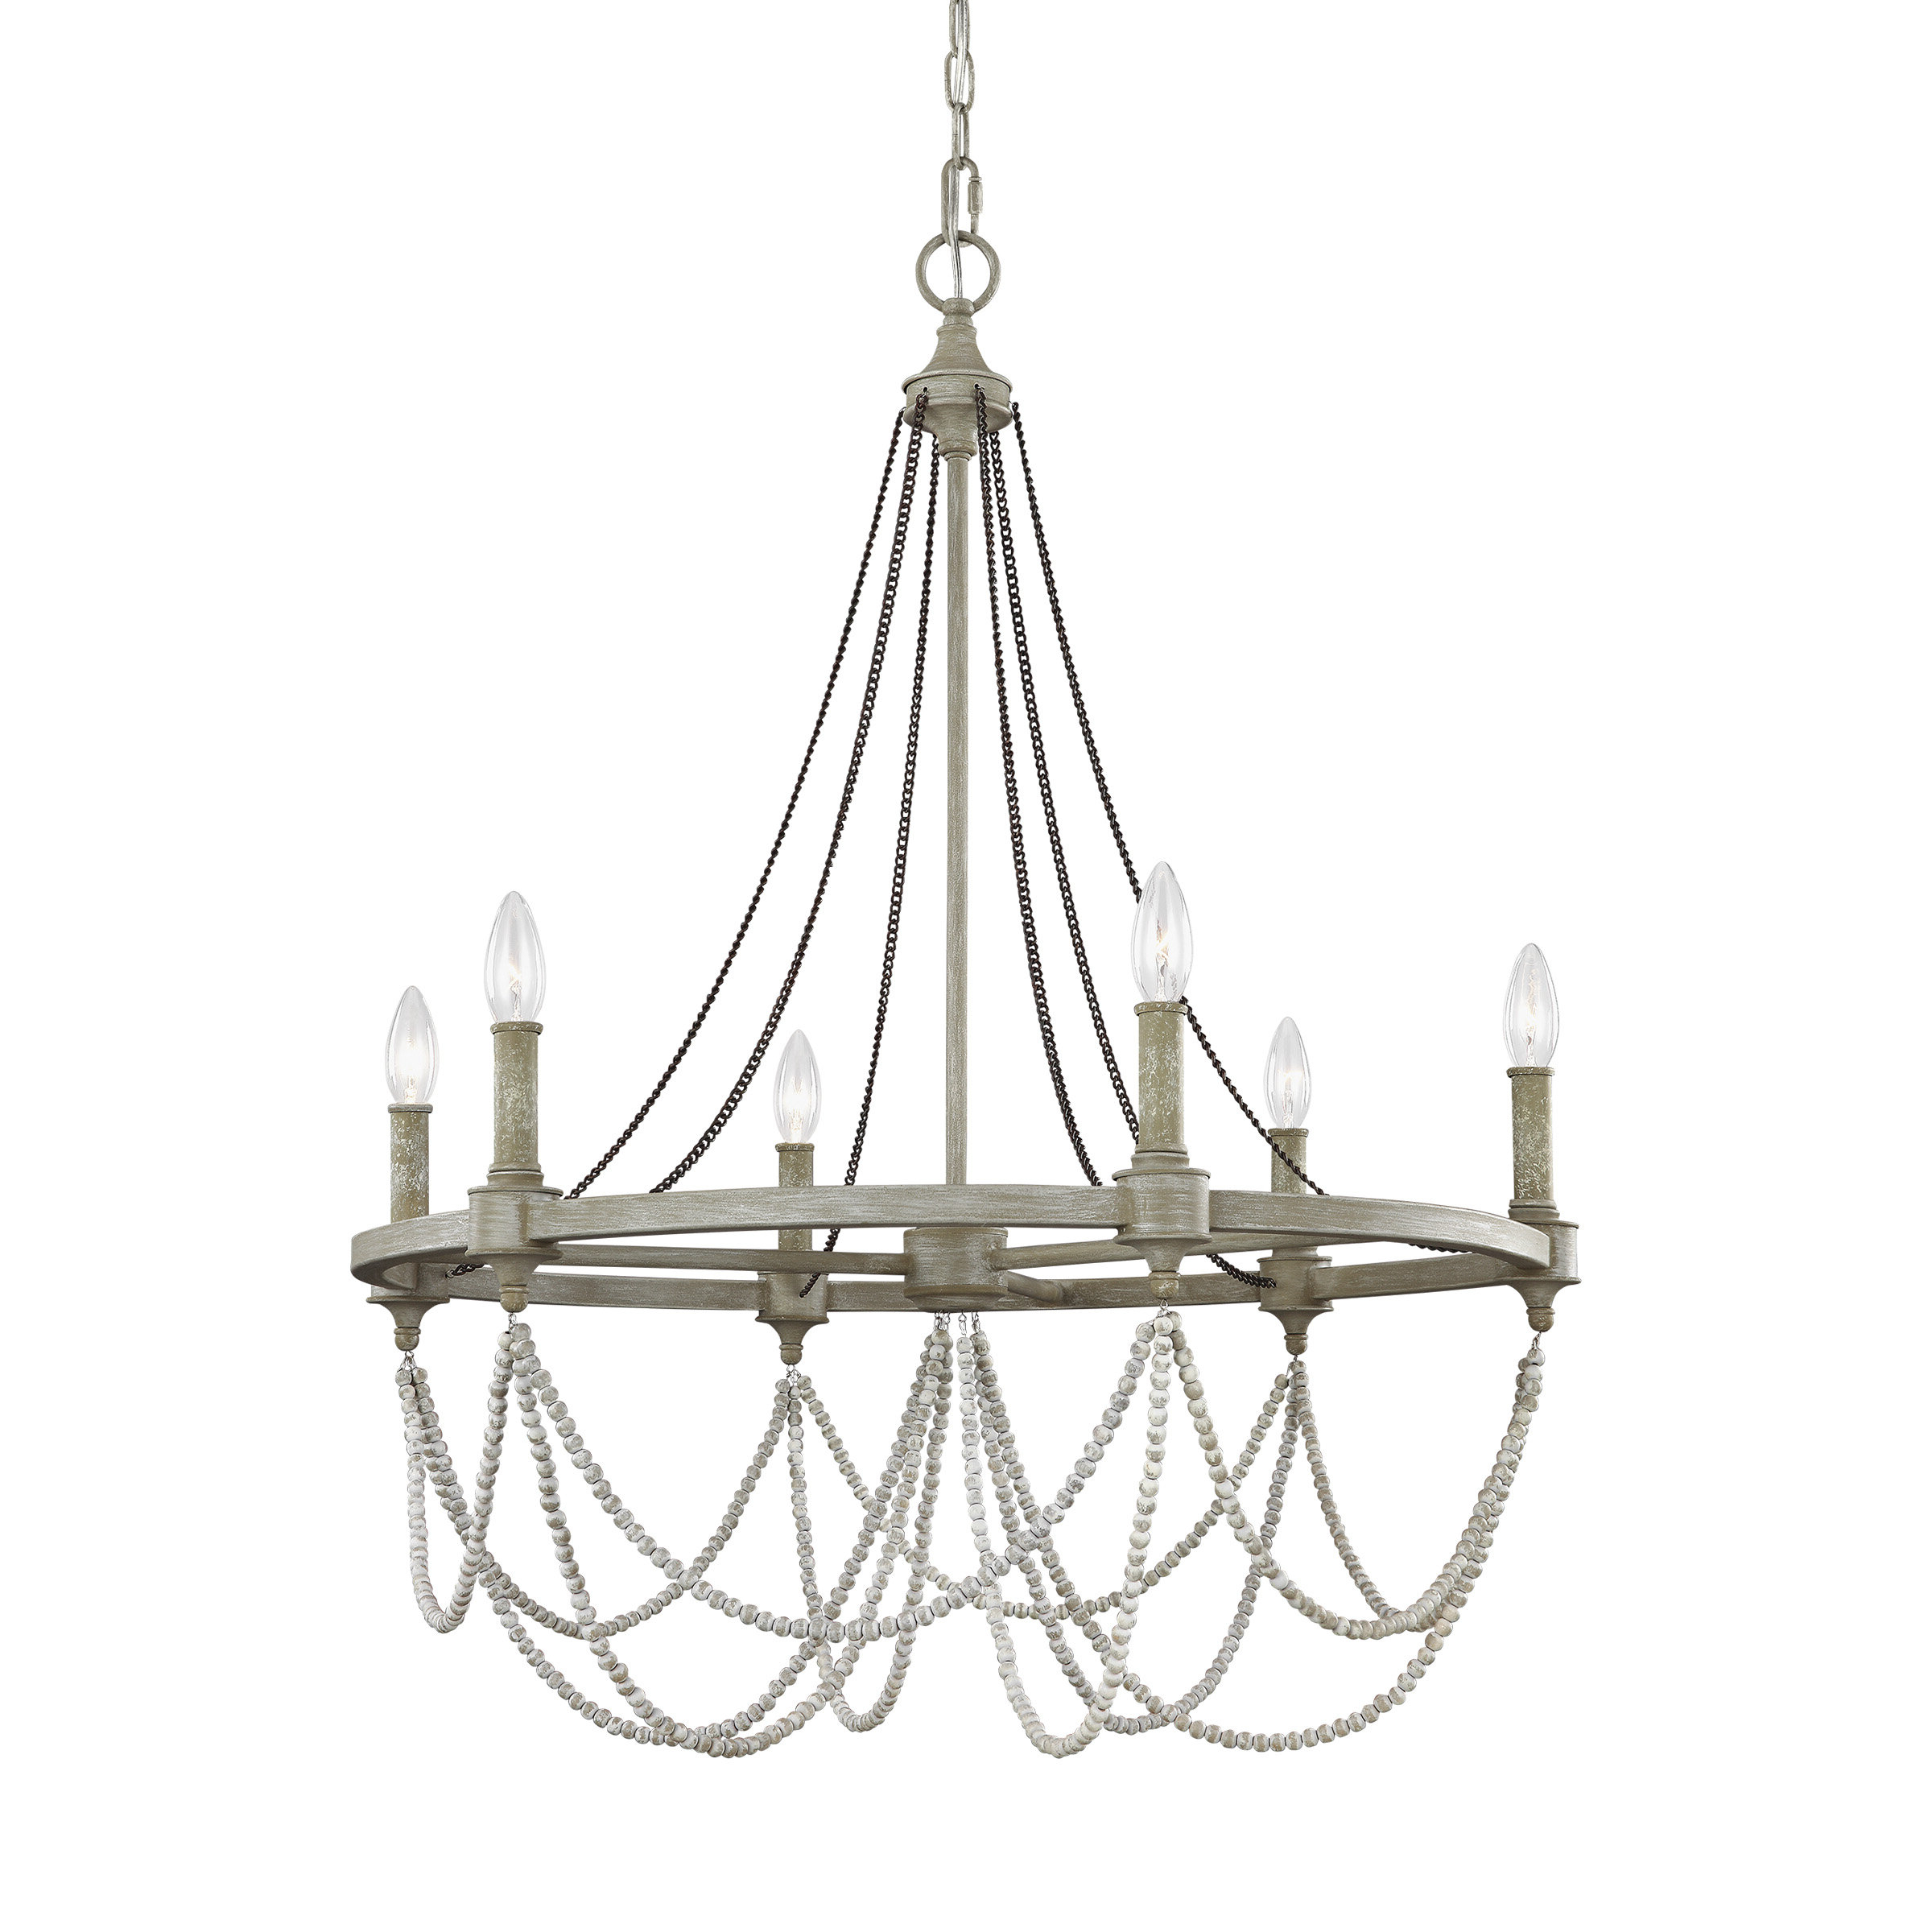 Fitzgibbon 6 Light Candle Style Chandelier In Favorite Diaz 6 Light Candle Style Chandeliers (View 17 of 25)